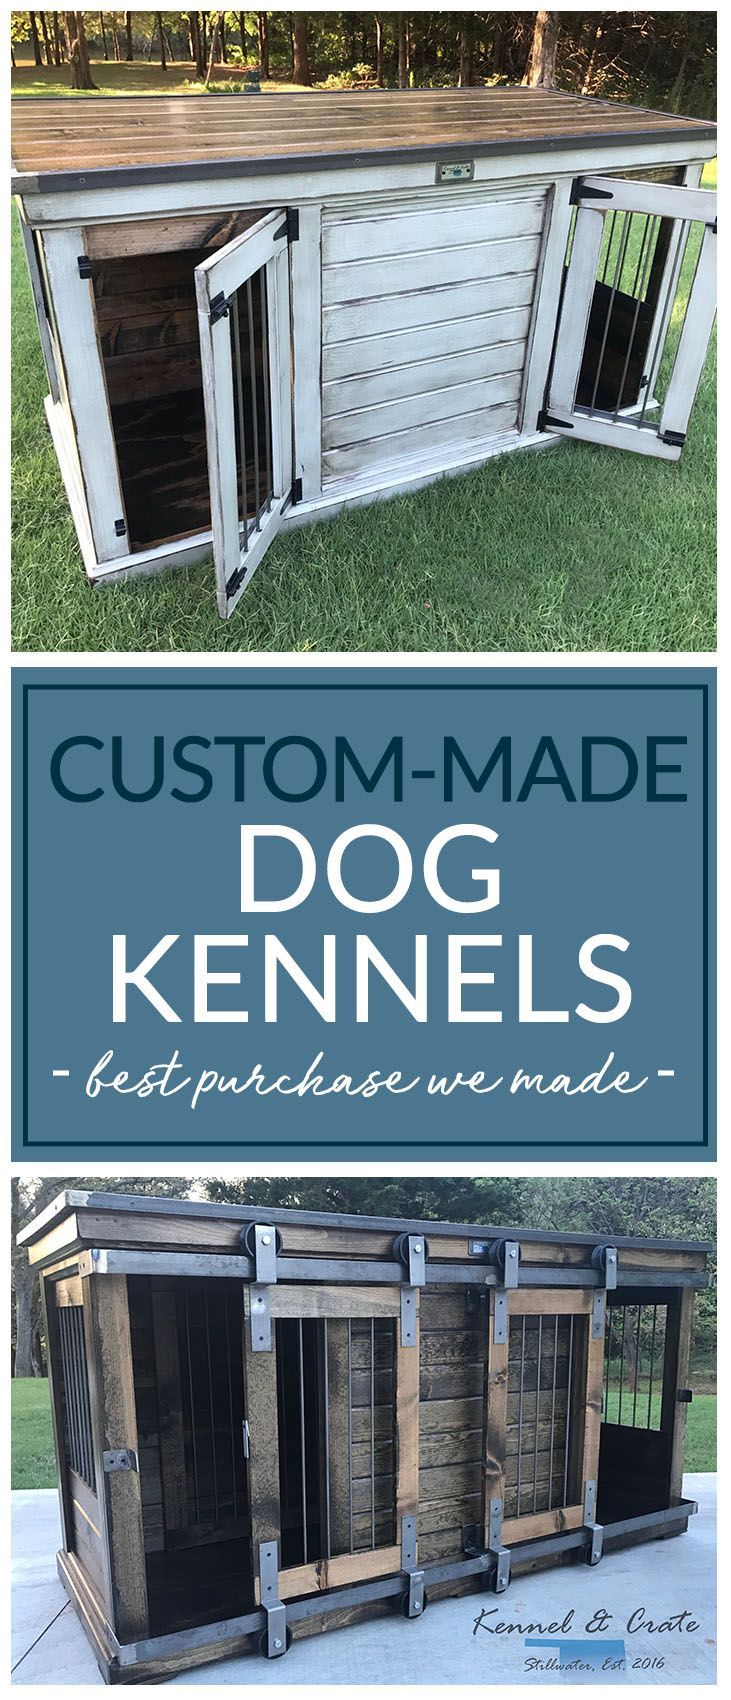 Kennel Crates Double Kennels Feature An Interior Door That Allows